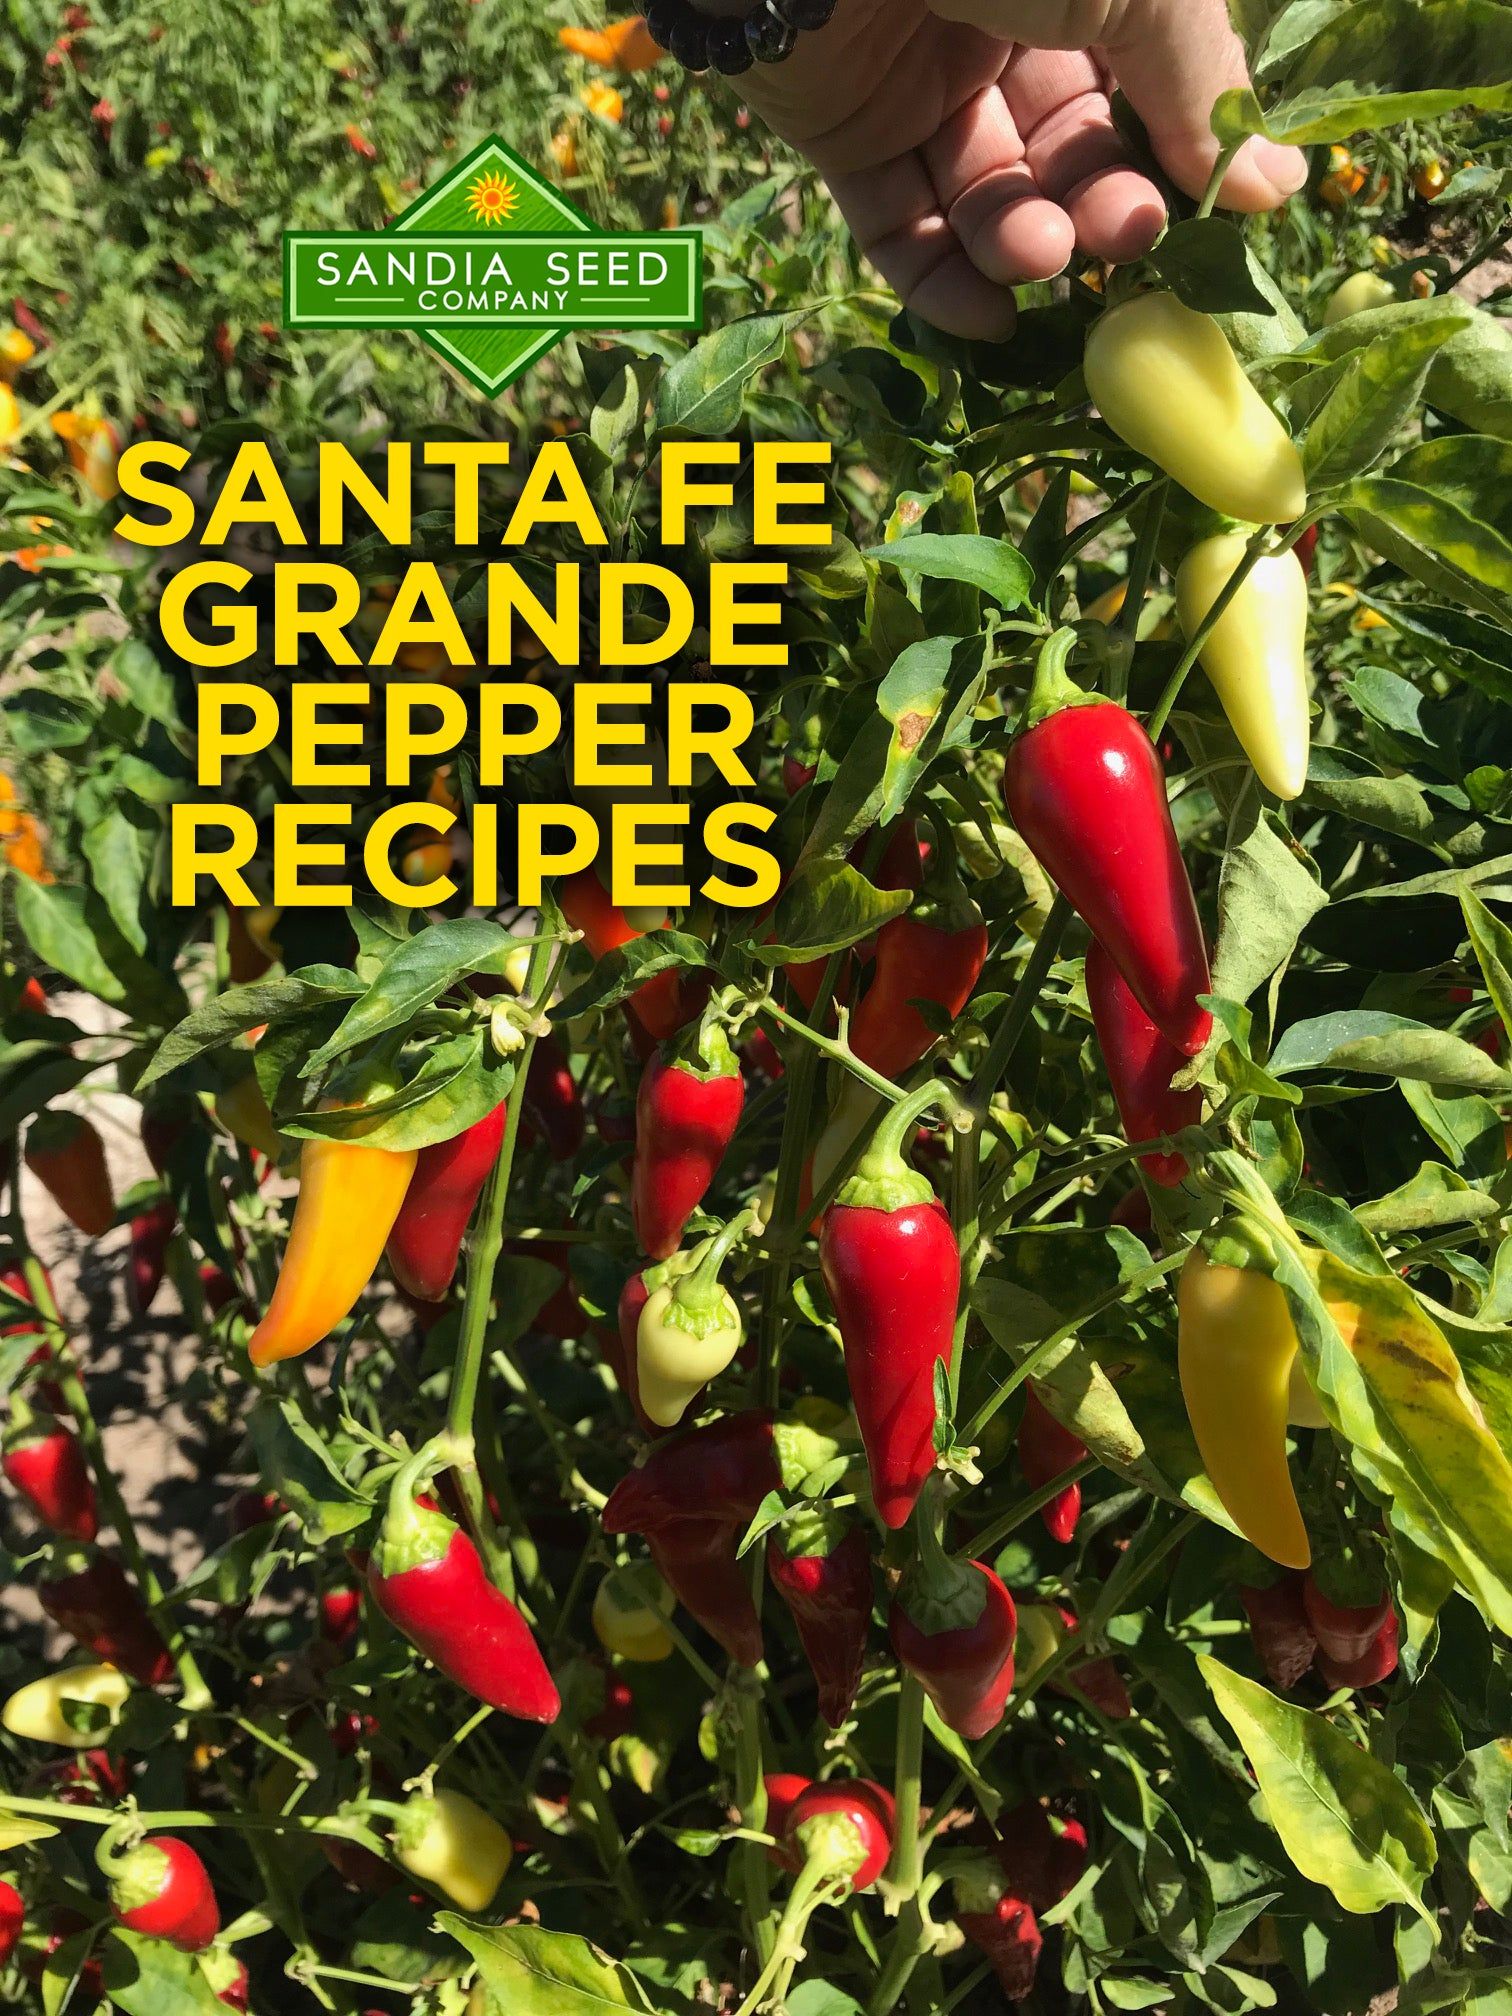 Santa Fe Grande Pepper Recipes